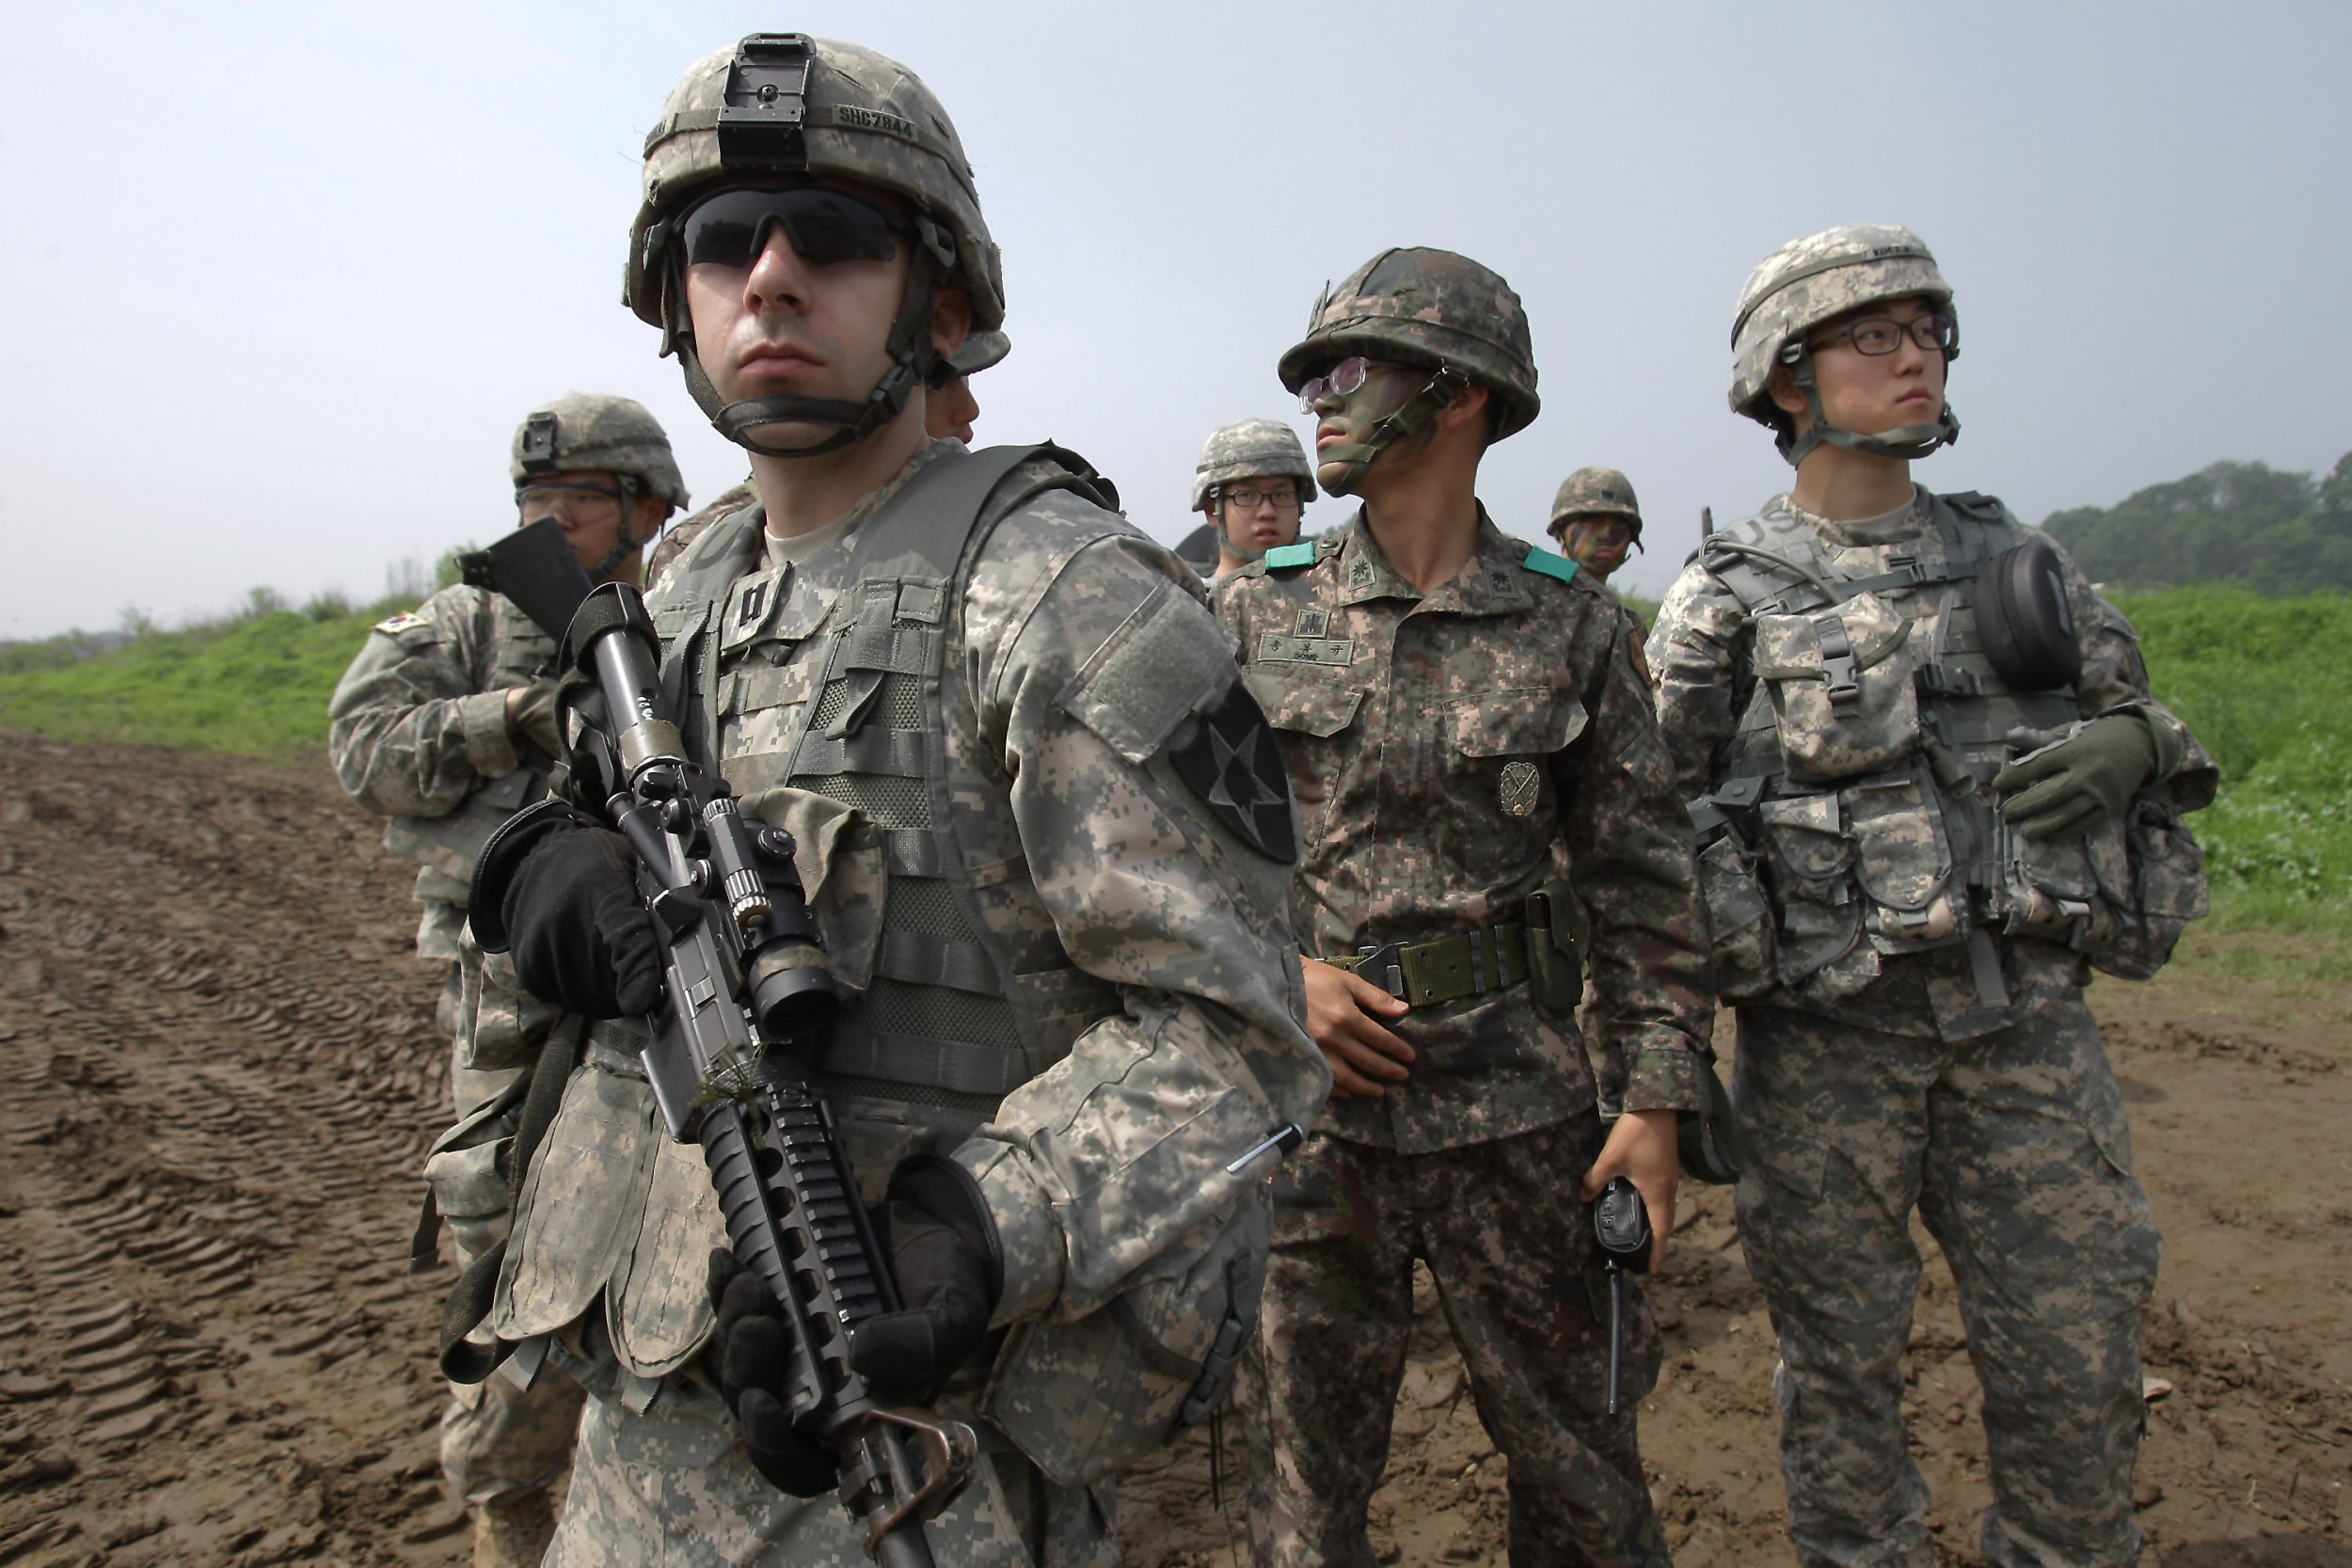 USA troops get 'false order' to leave South Korea